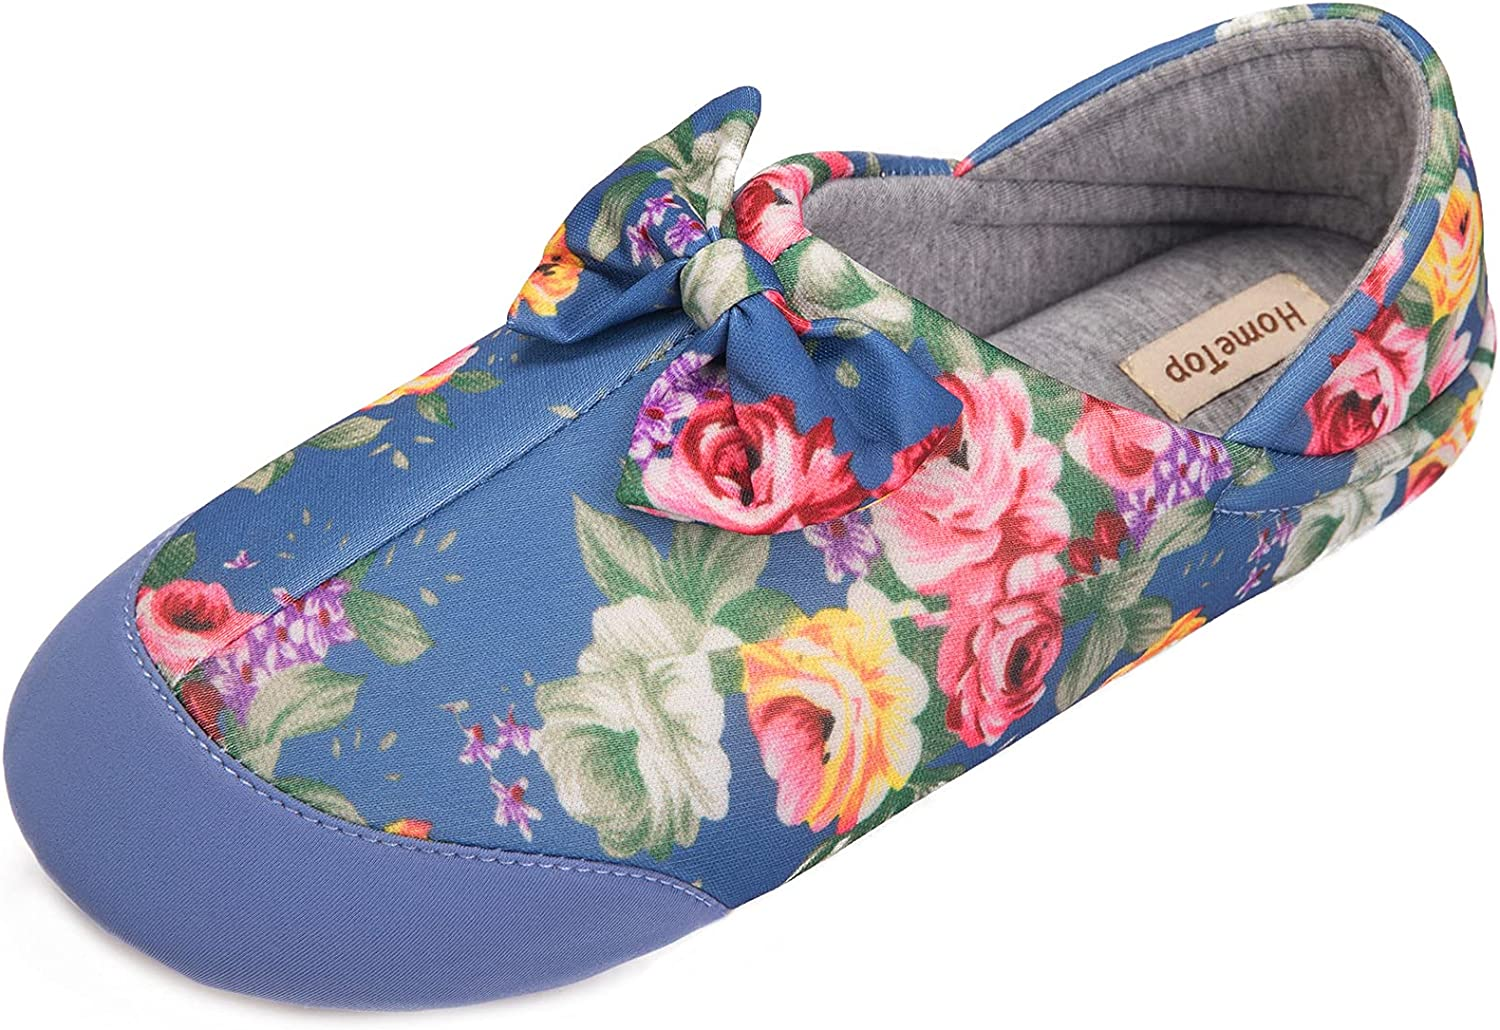 HomeTop Women's Lightweight Slippers Retro Printing Bowknot House Shoes